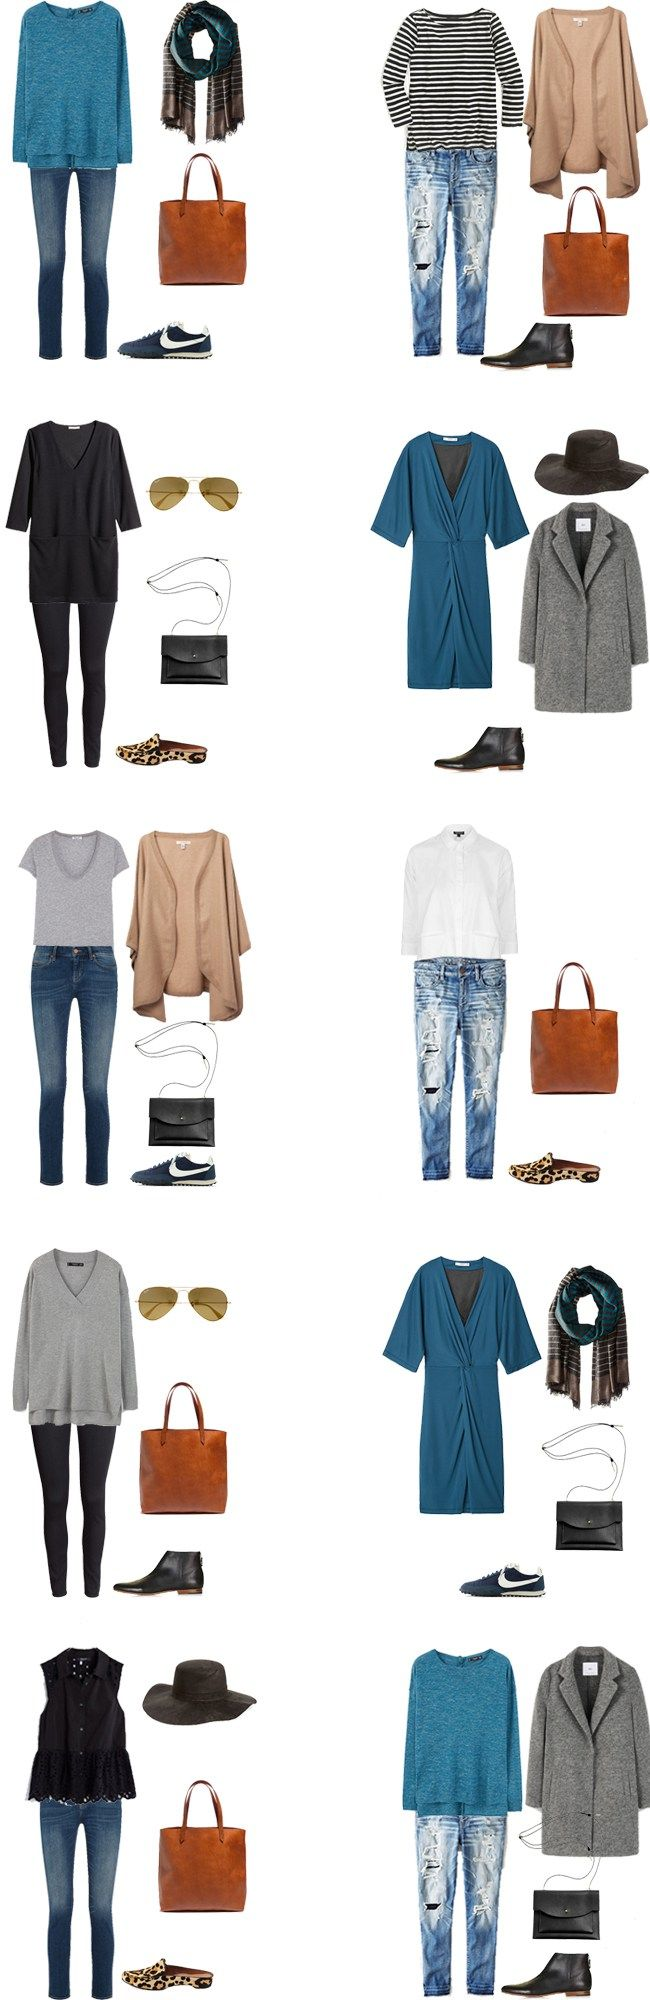 What to wear in Amsterdam Netherlands outfit options 1-10 #packinglight #travellight #traveltips #travel